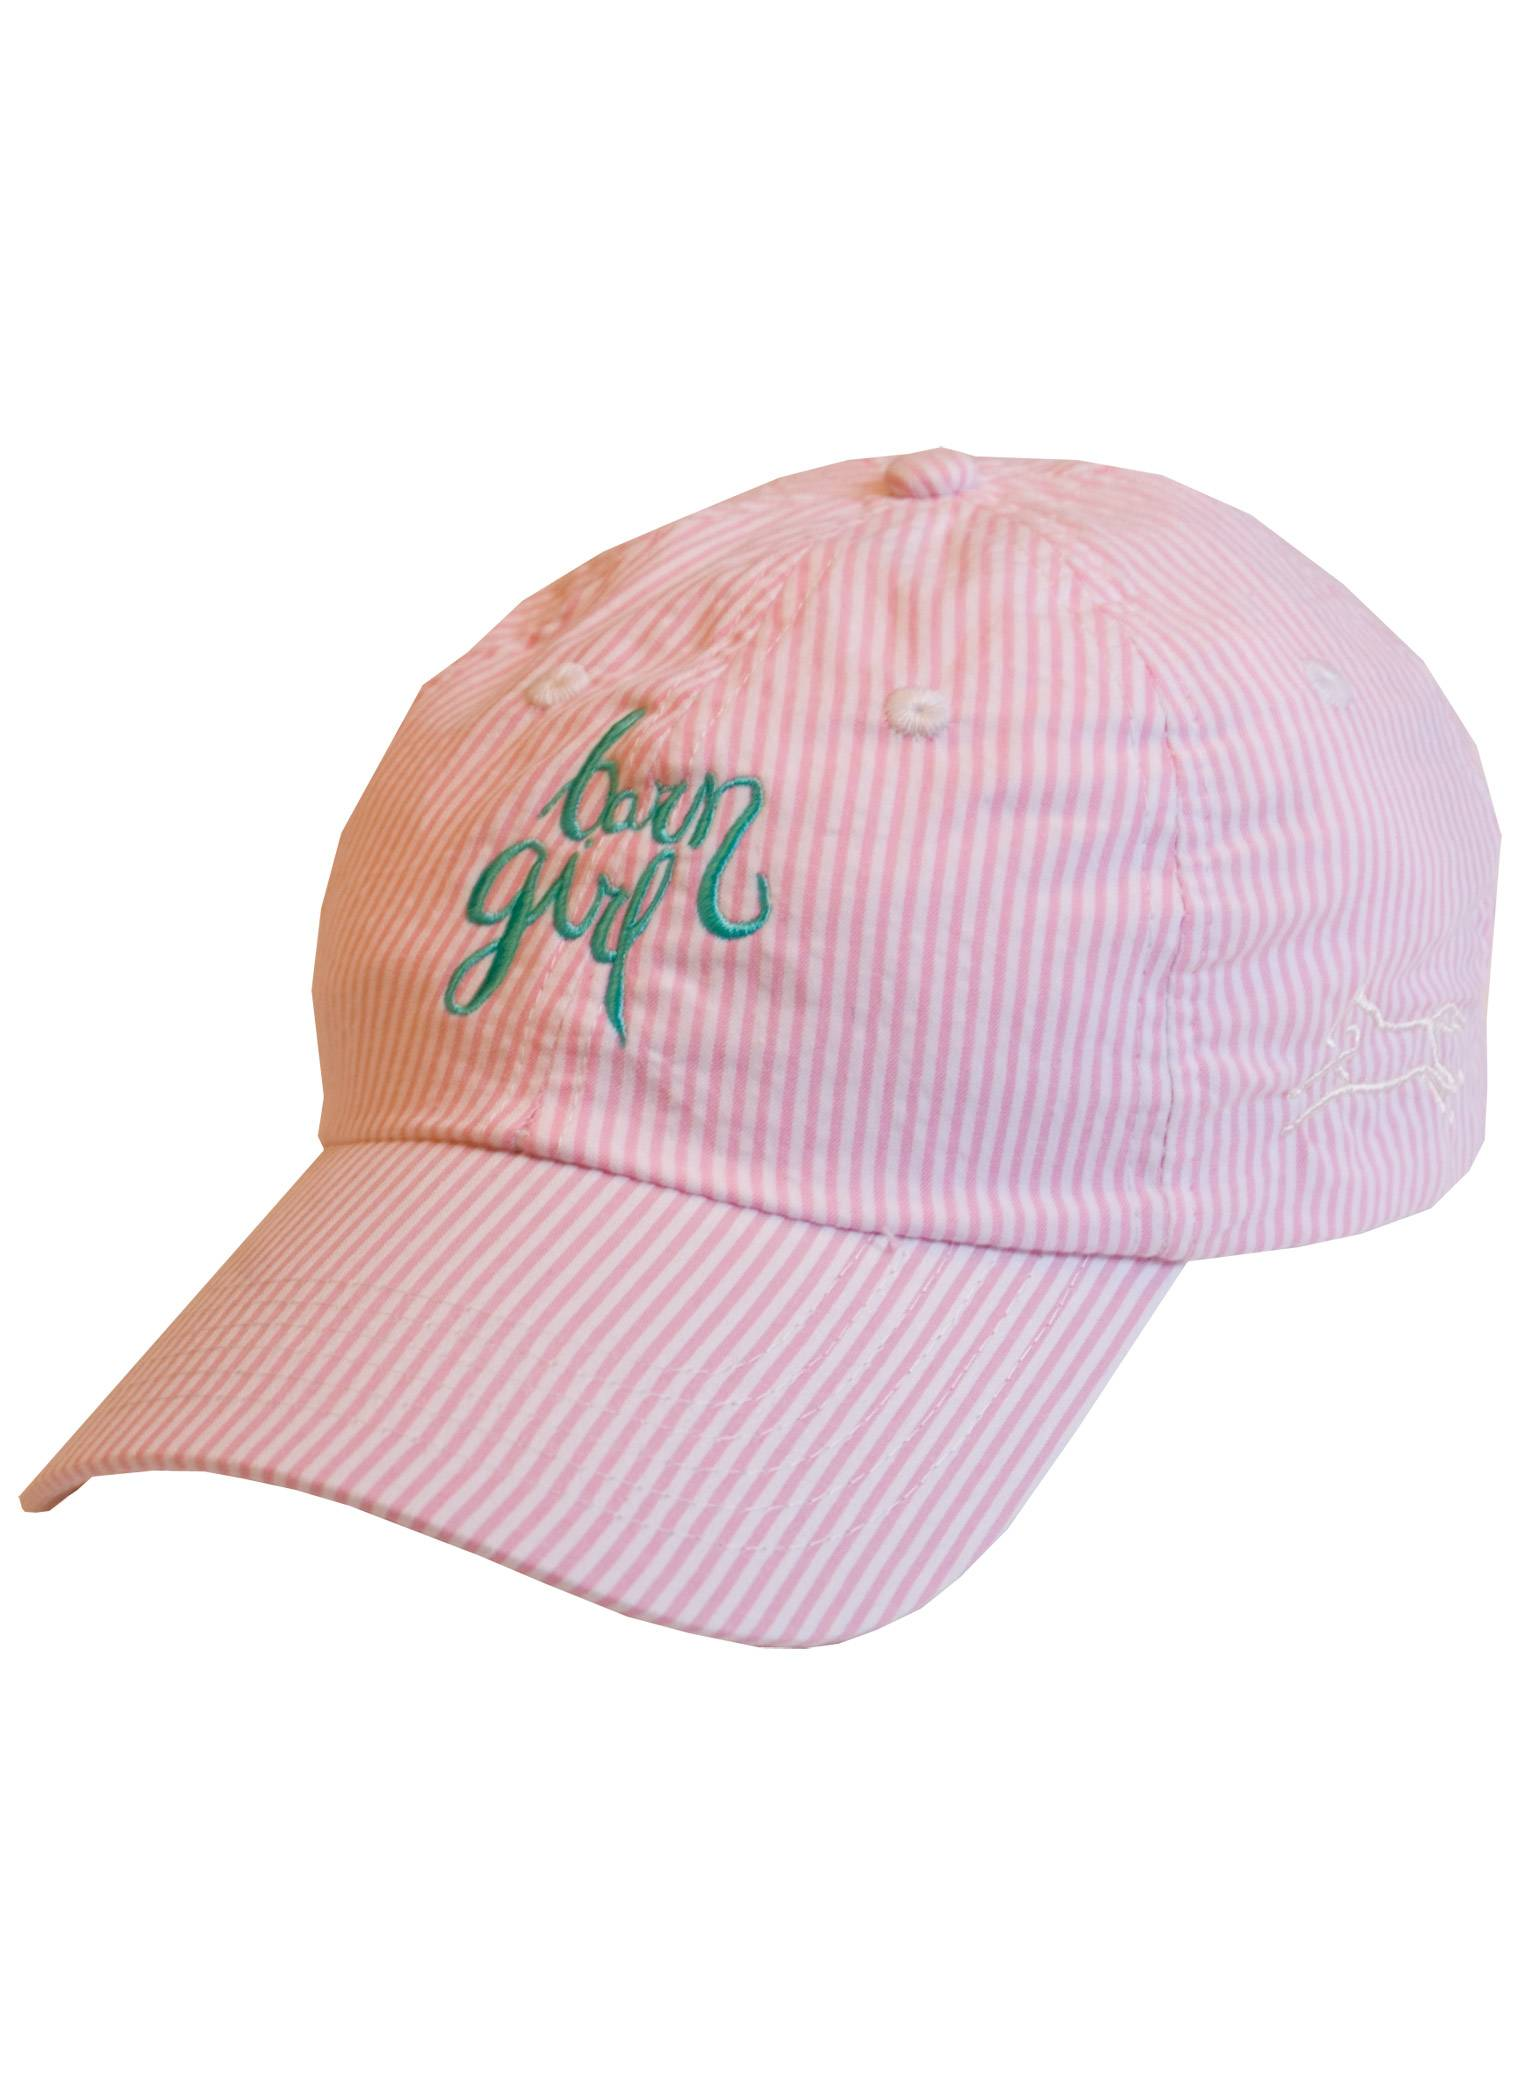 Stirrups Ladies Barn Girl Embroidered Cotton Twill Adj. Cap